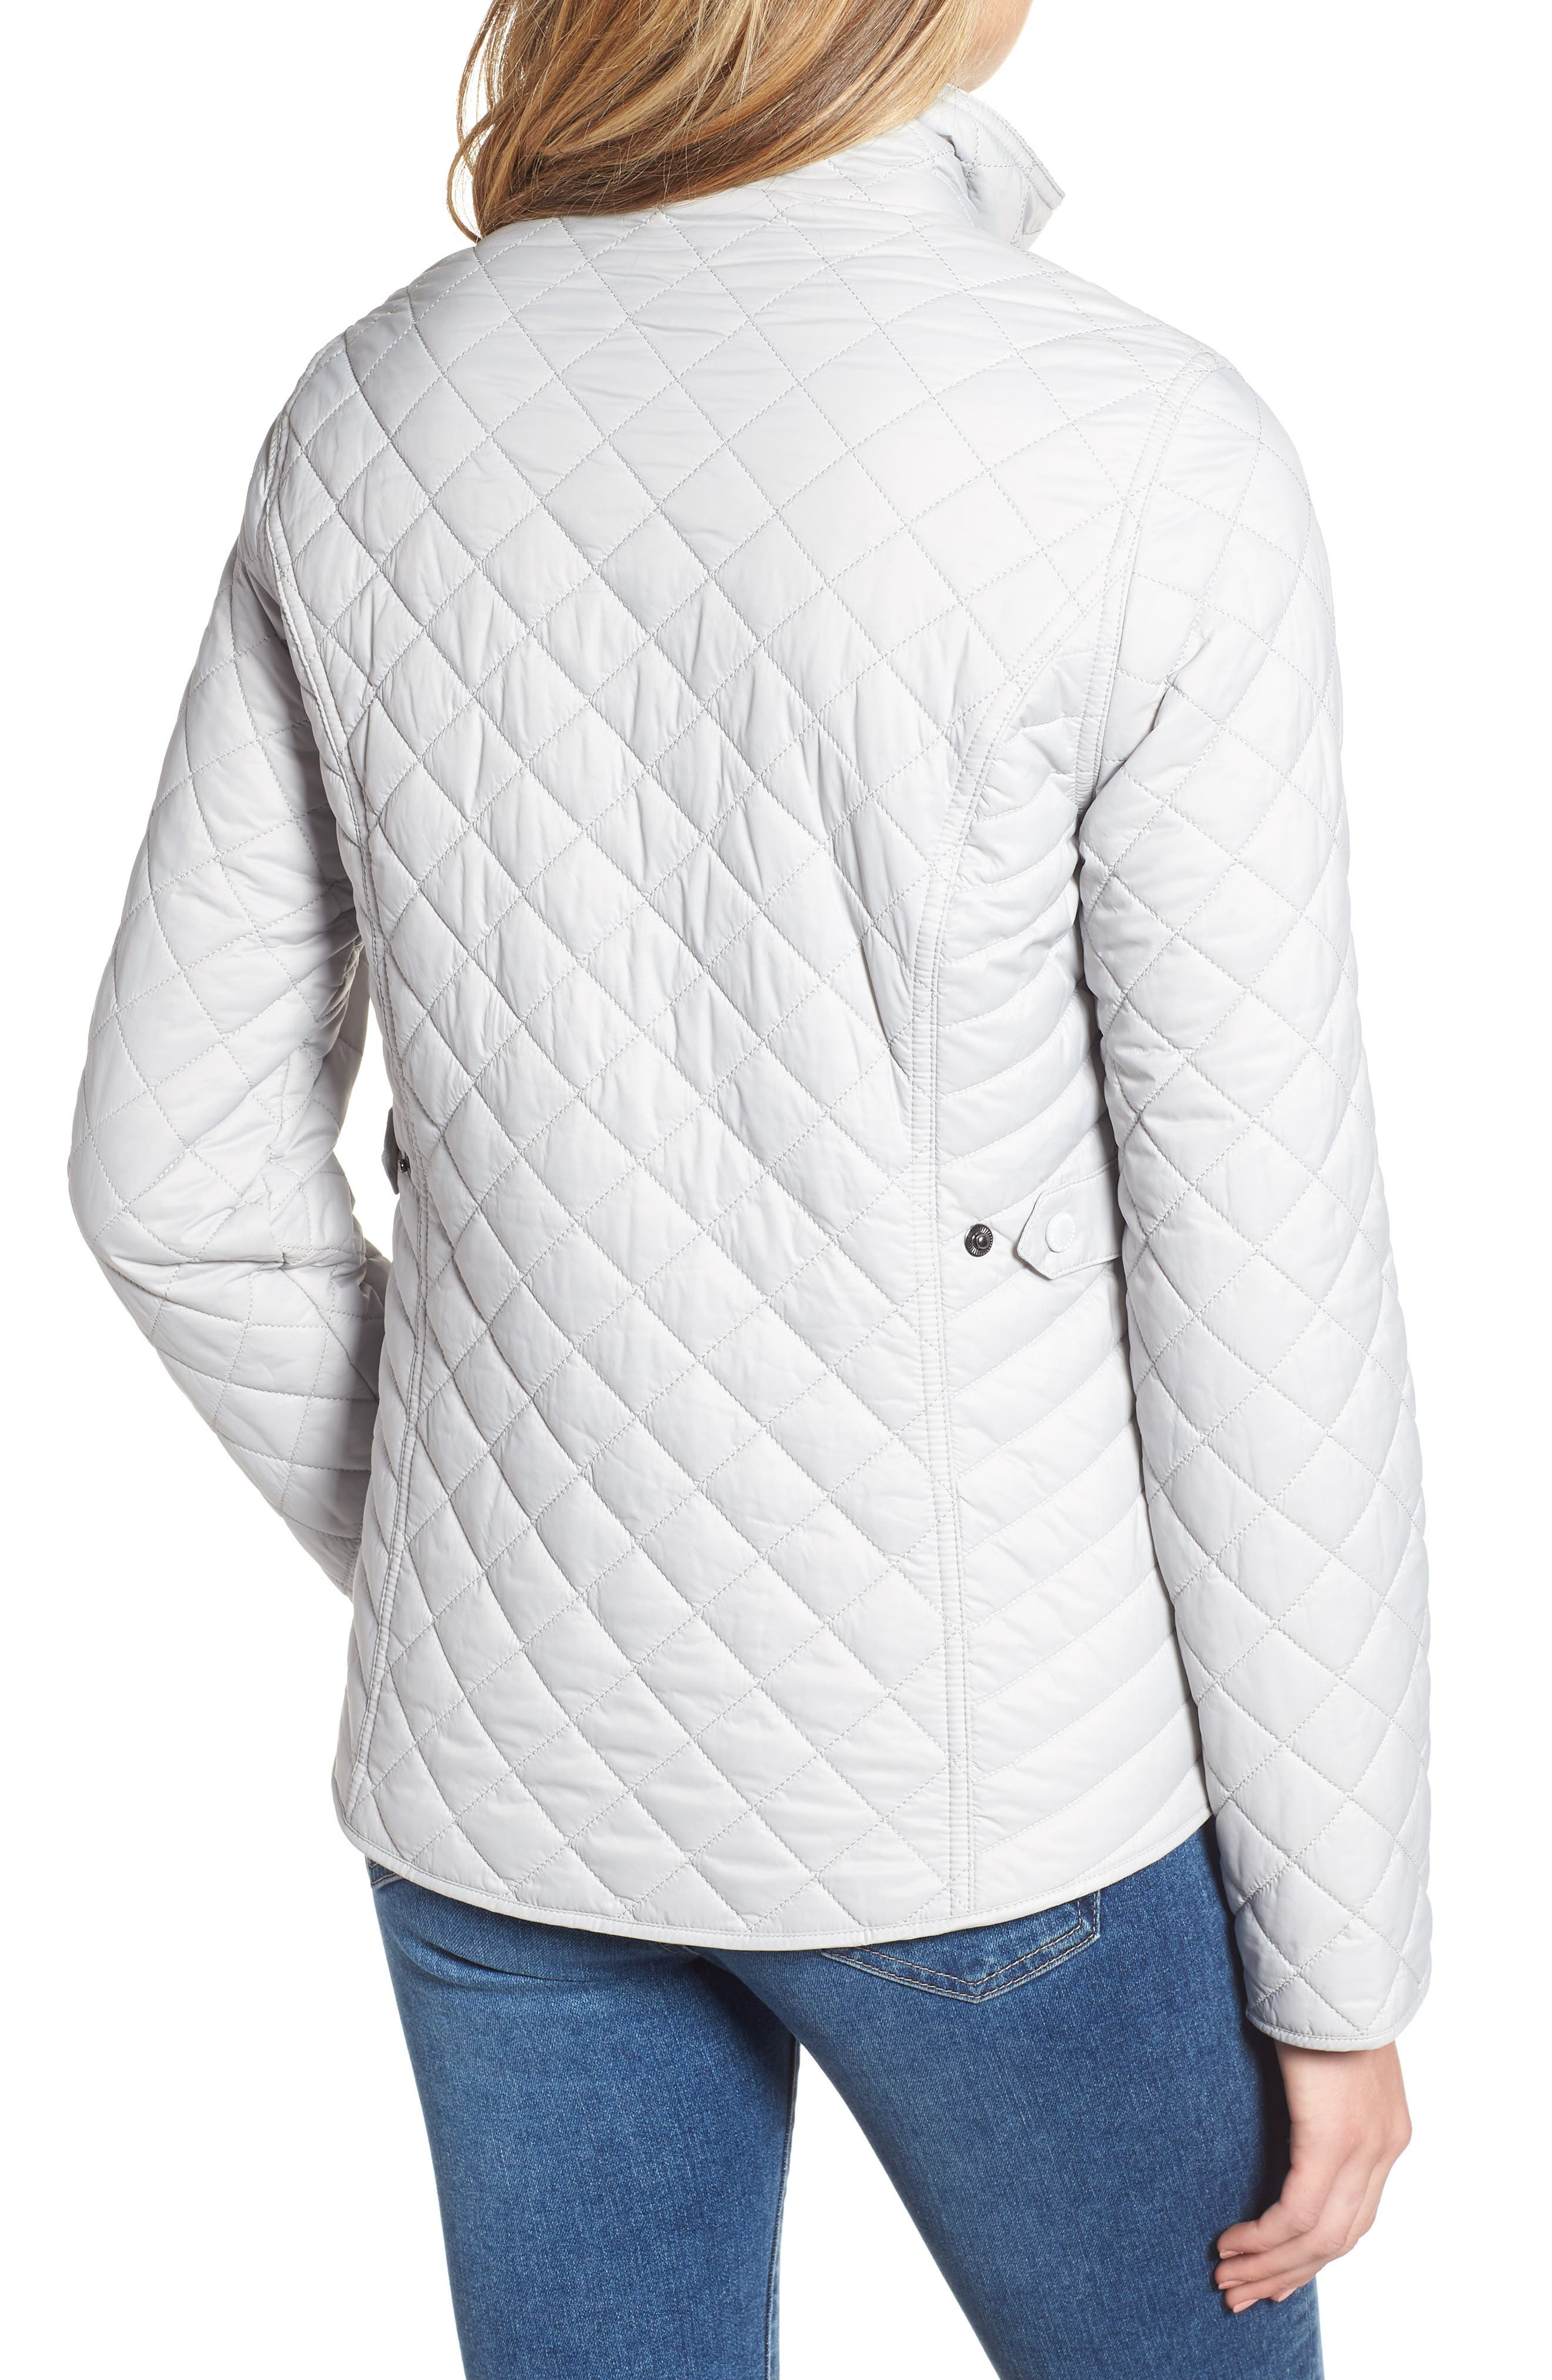 BARBOUR, Sailboat Quilted Jacket, Alternate thumbnail 2, color, 100